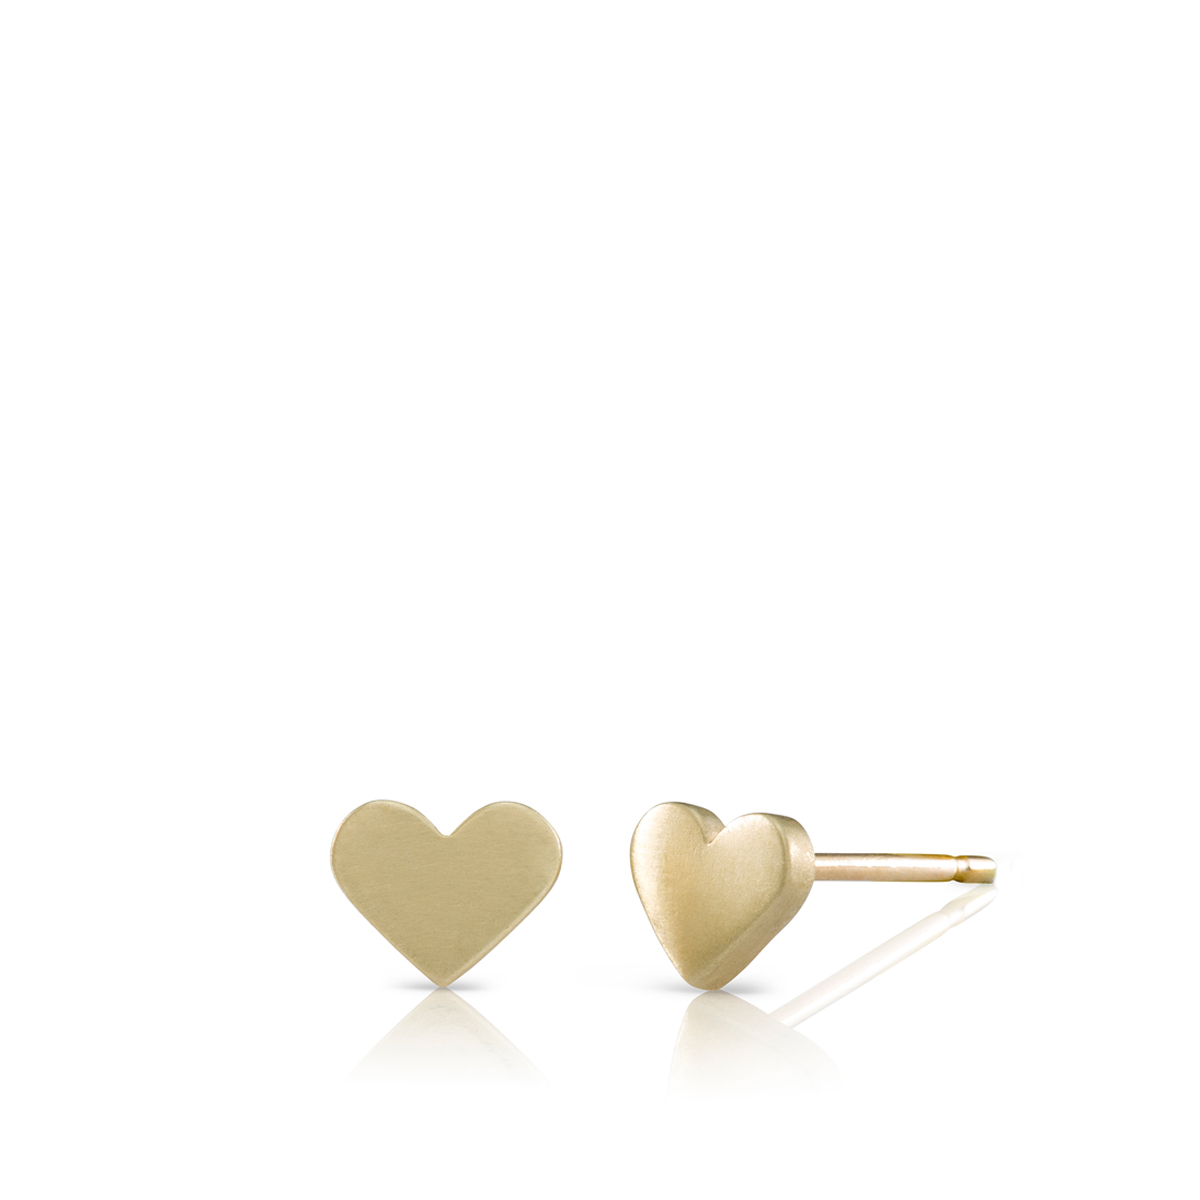 Small heart gold earrings